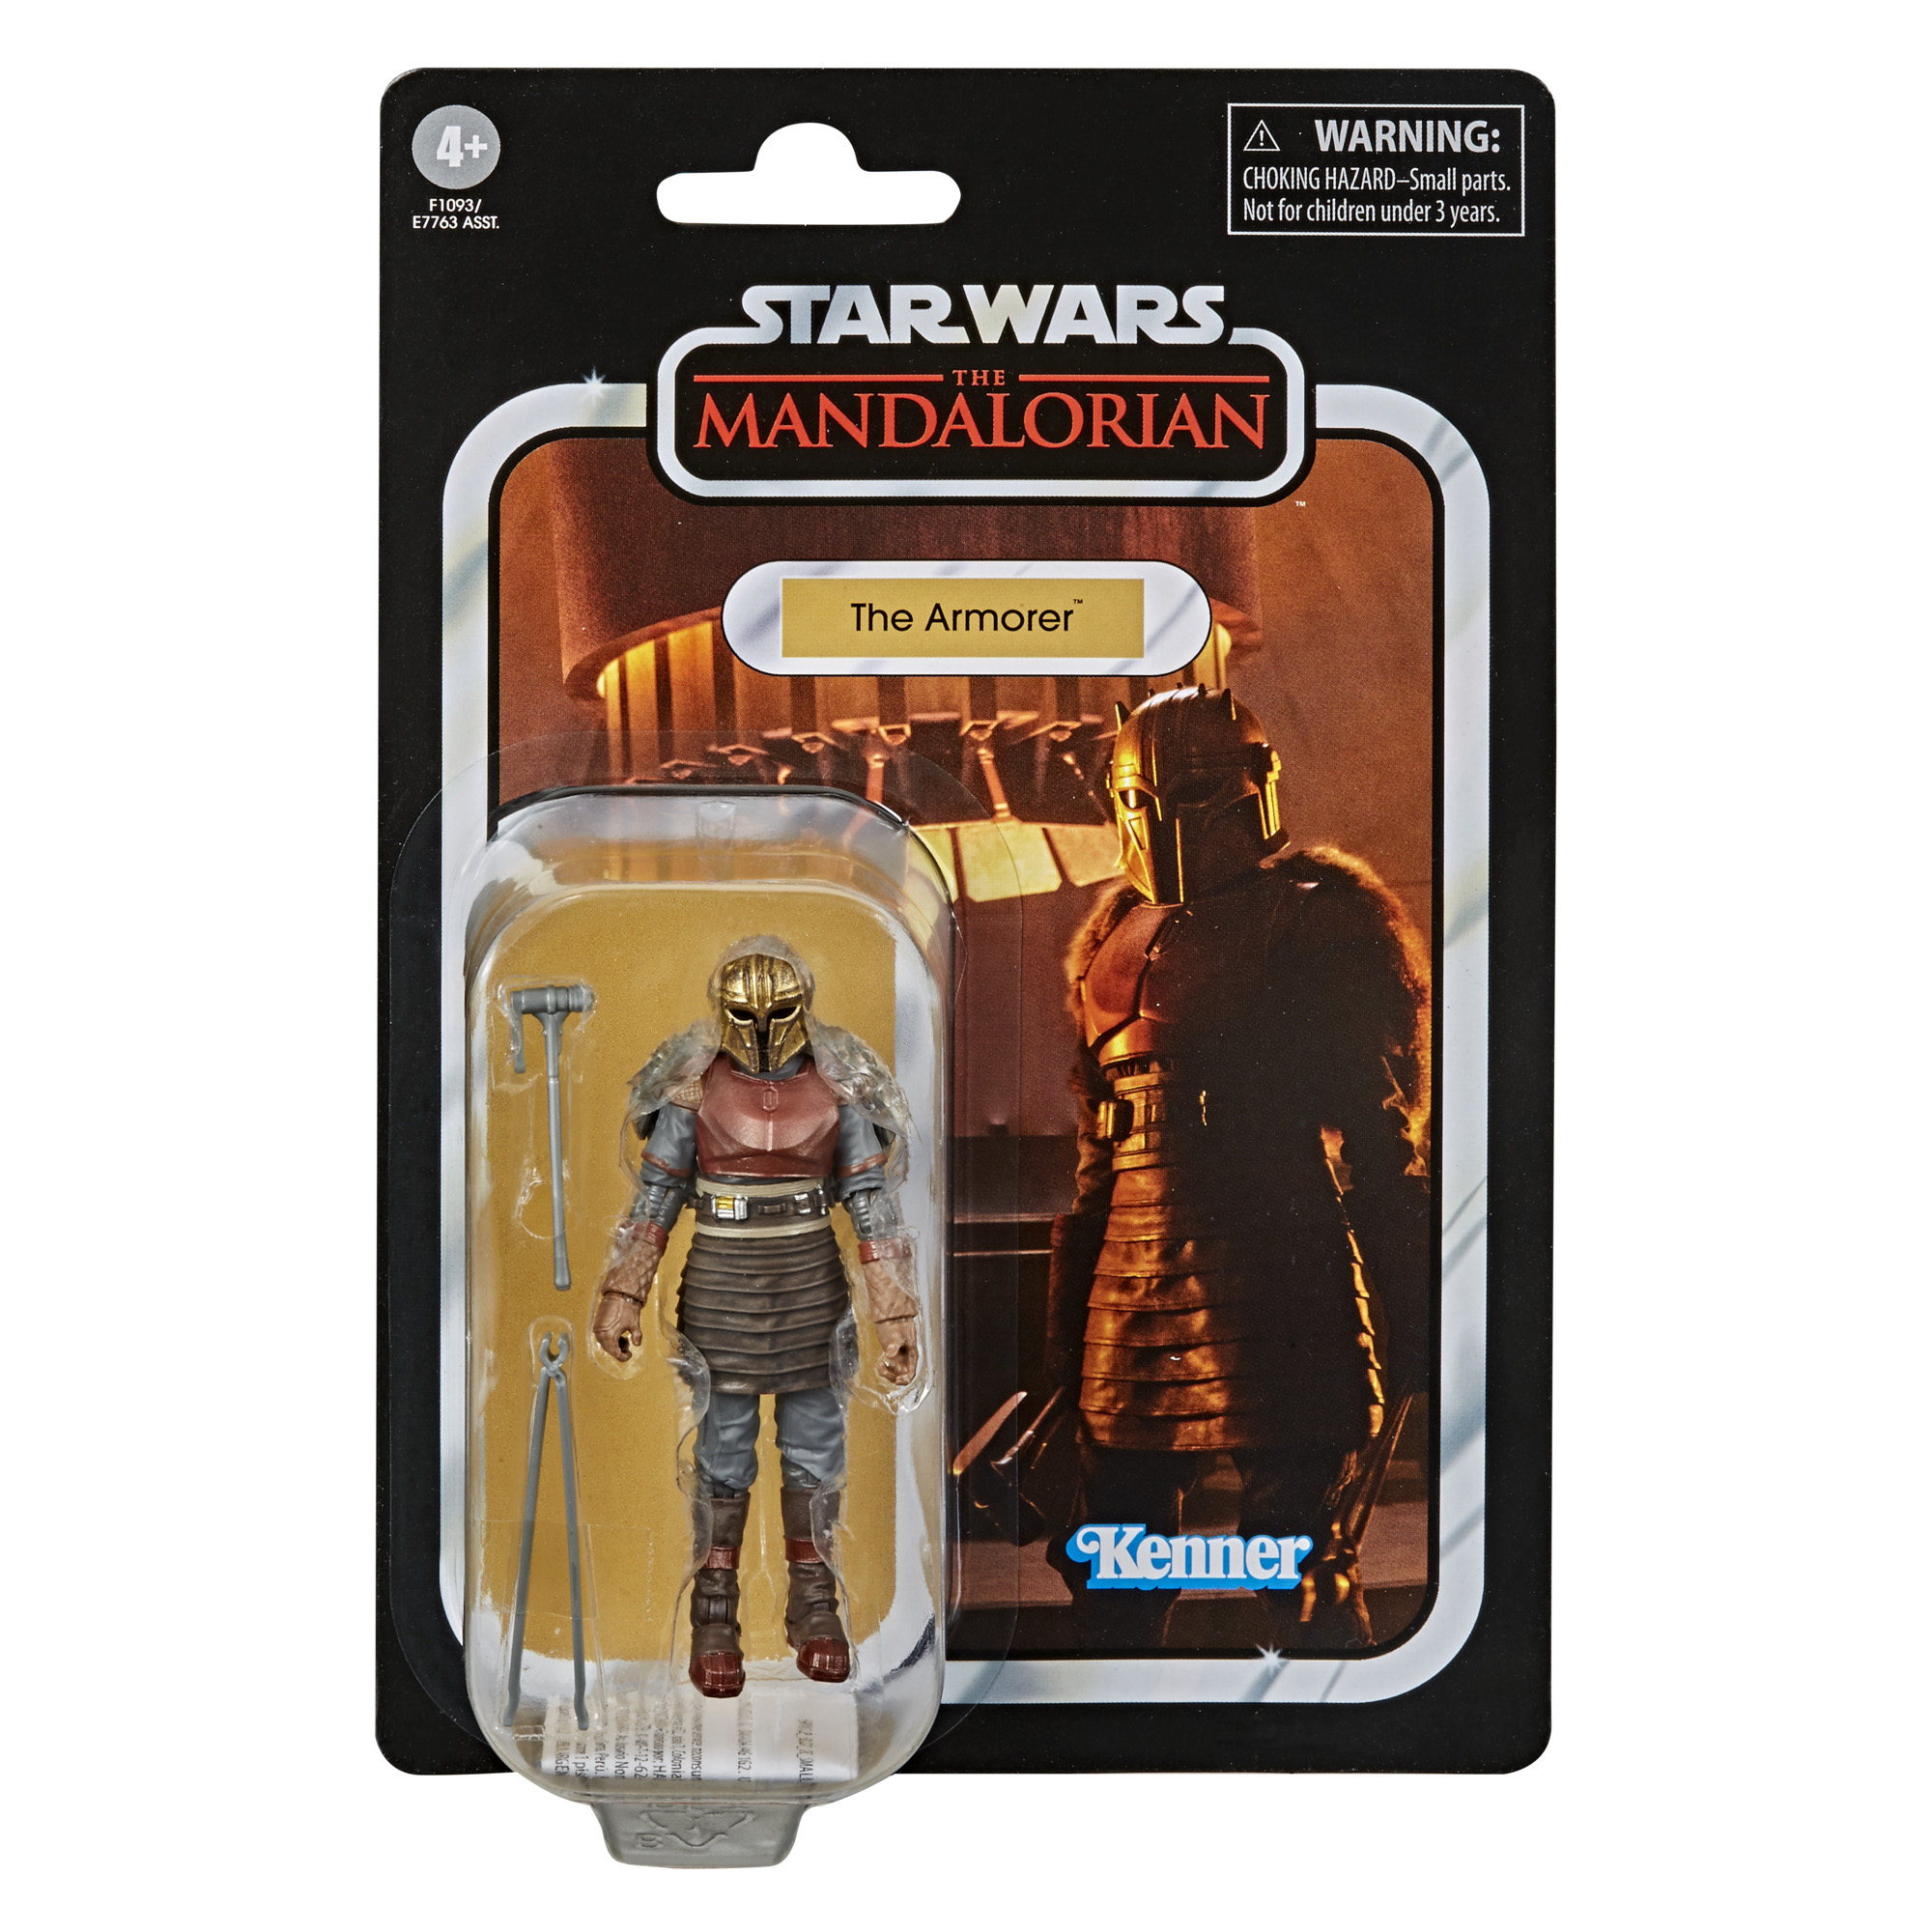 Star Wars The Vintage Collection The Armorer F10935X0 5010993800827